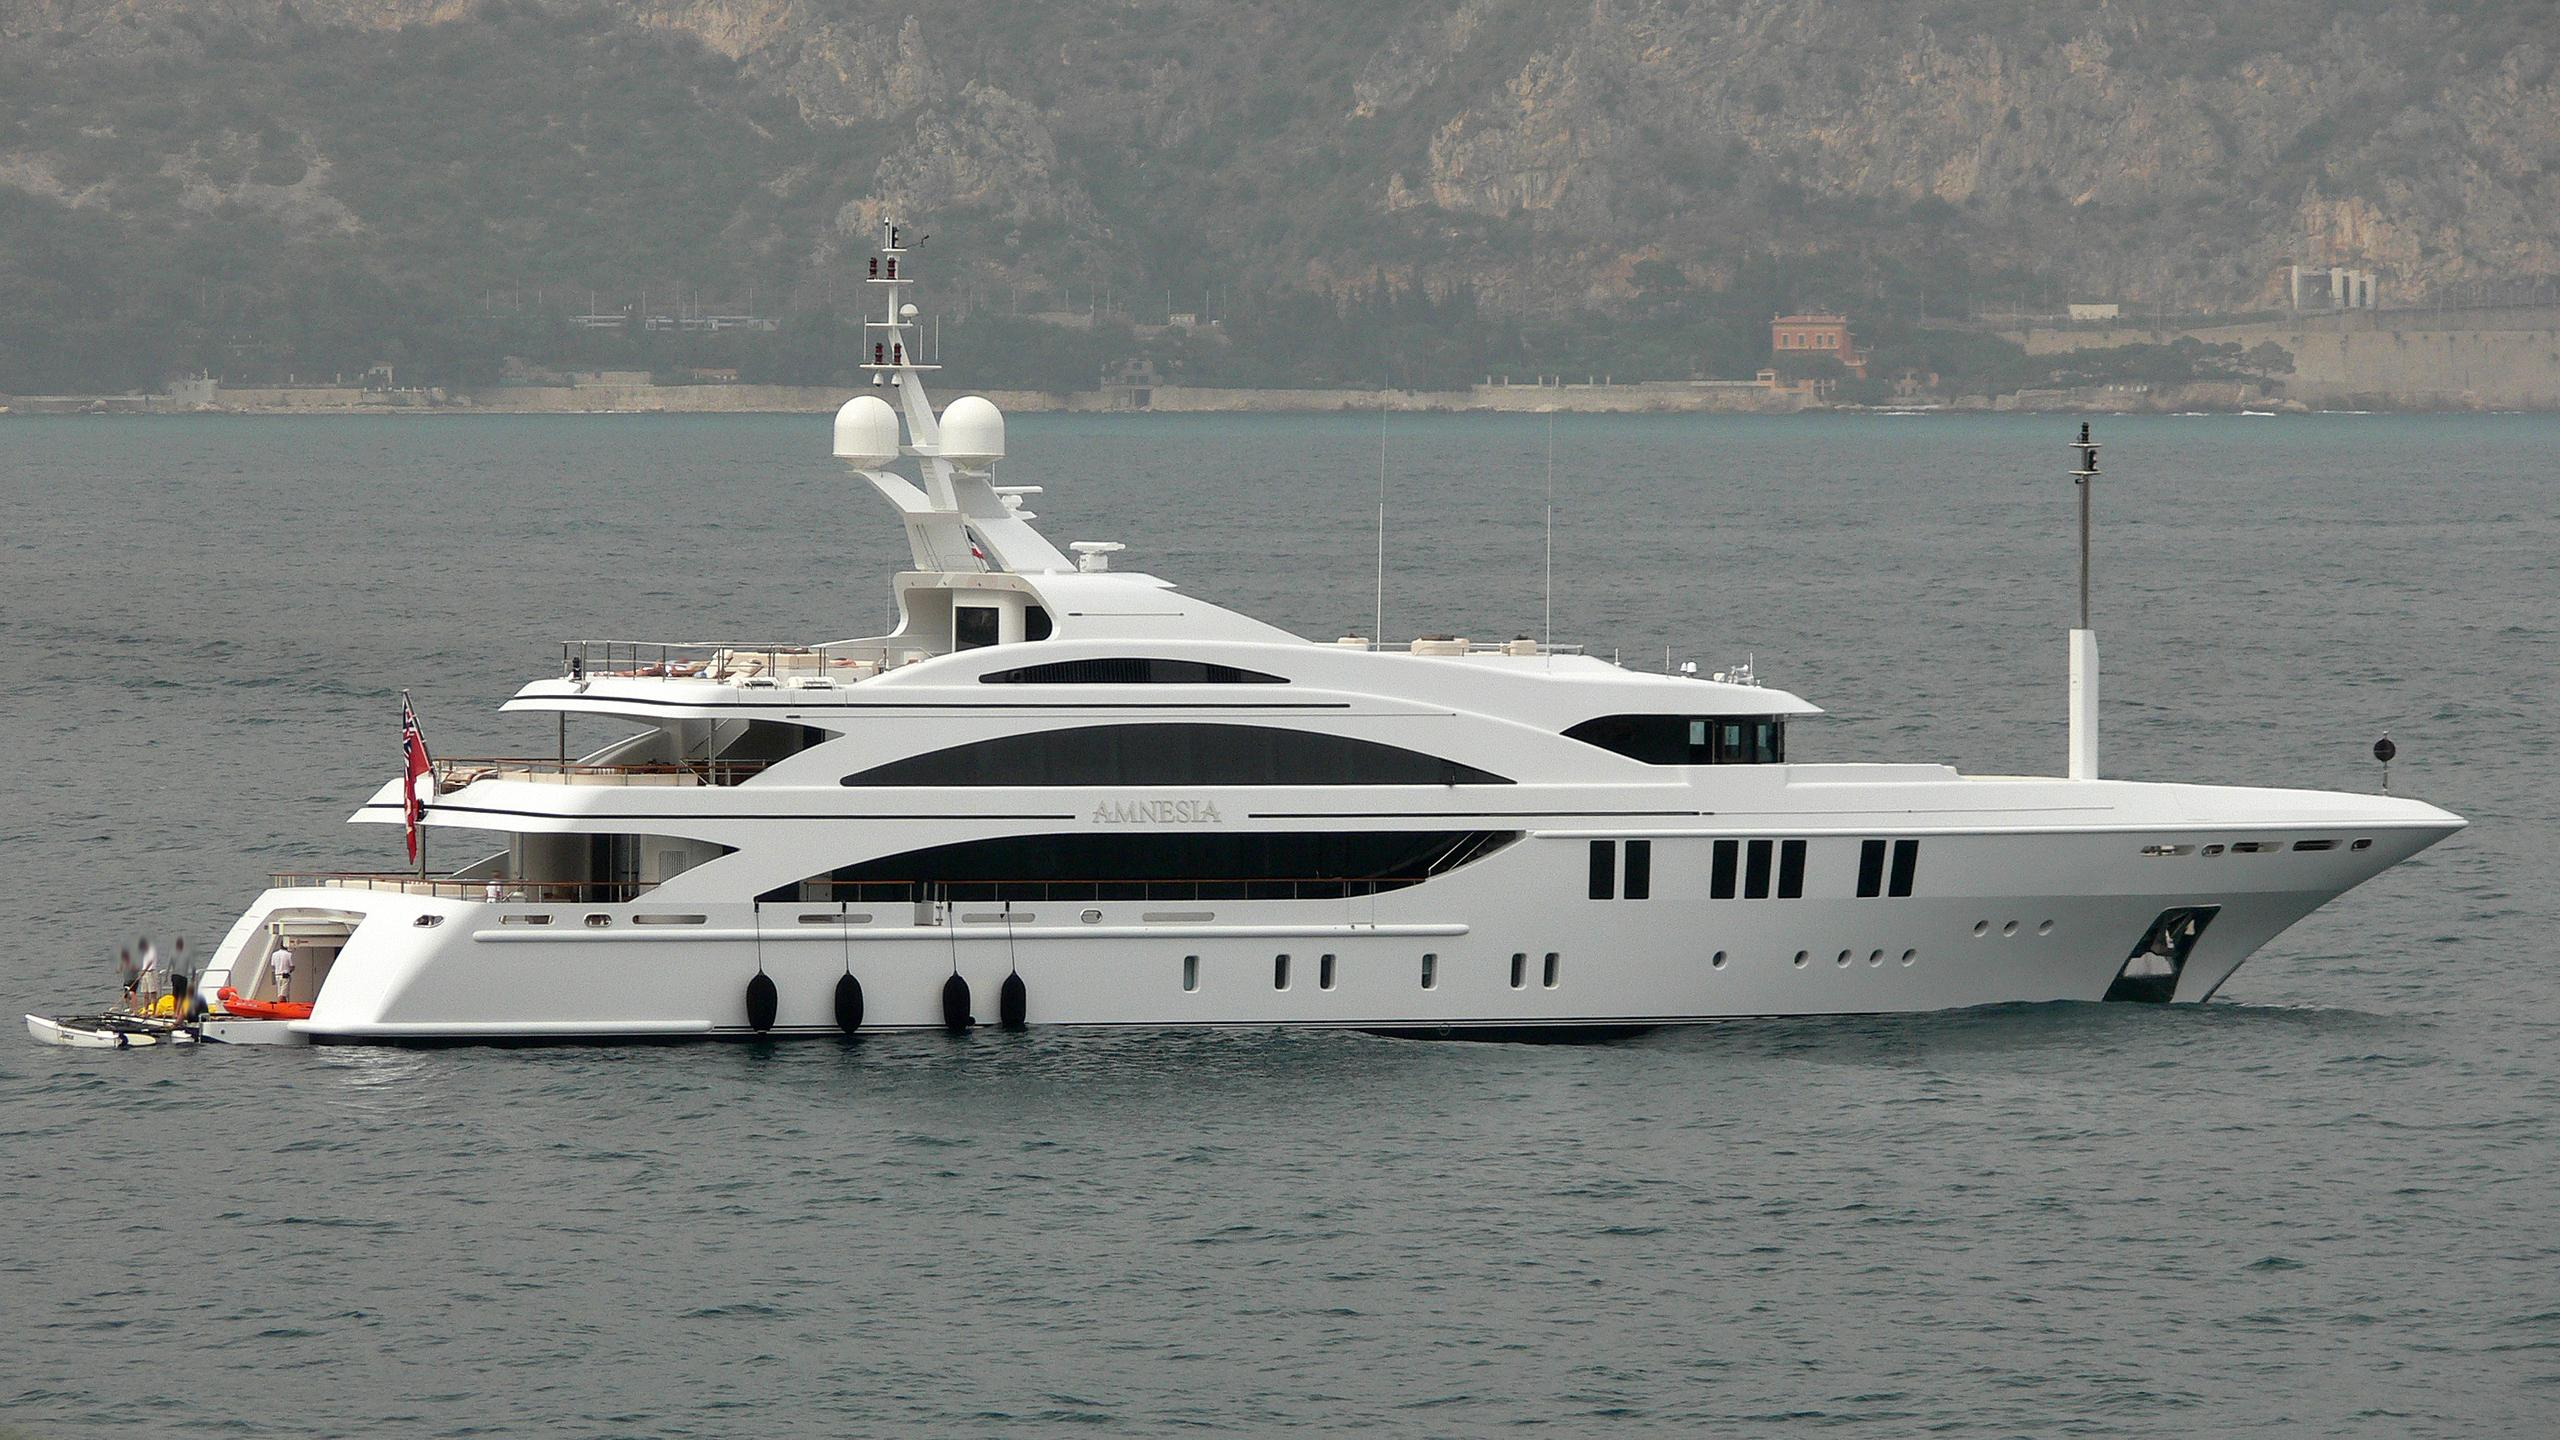 andreas-l-yacht-exterior